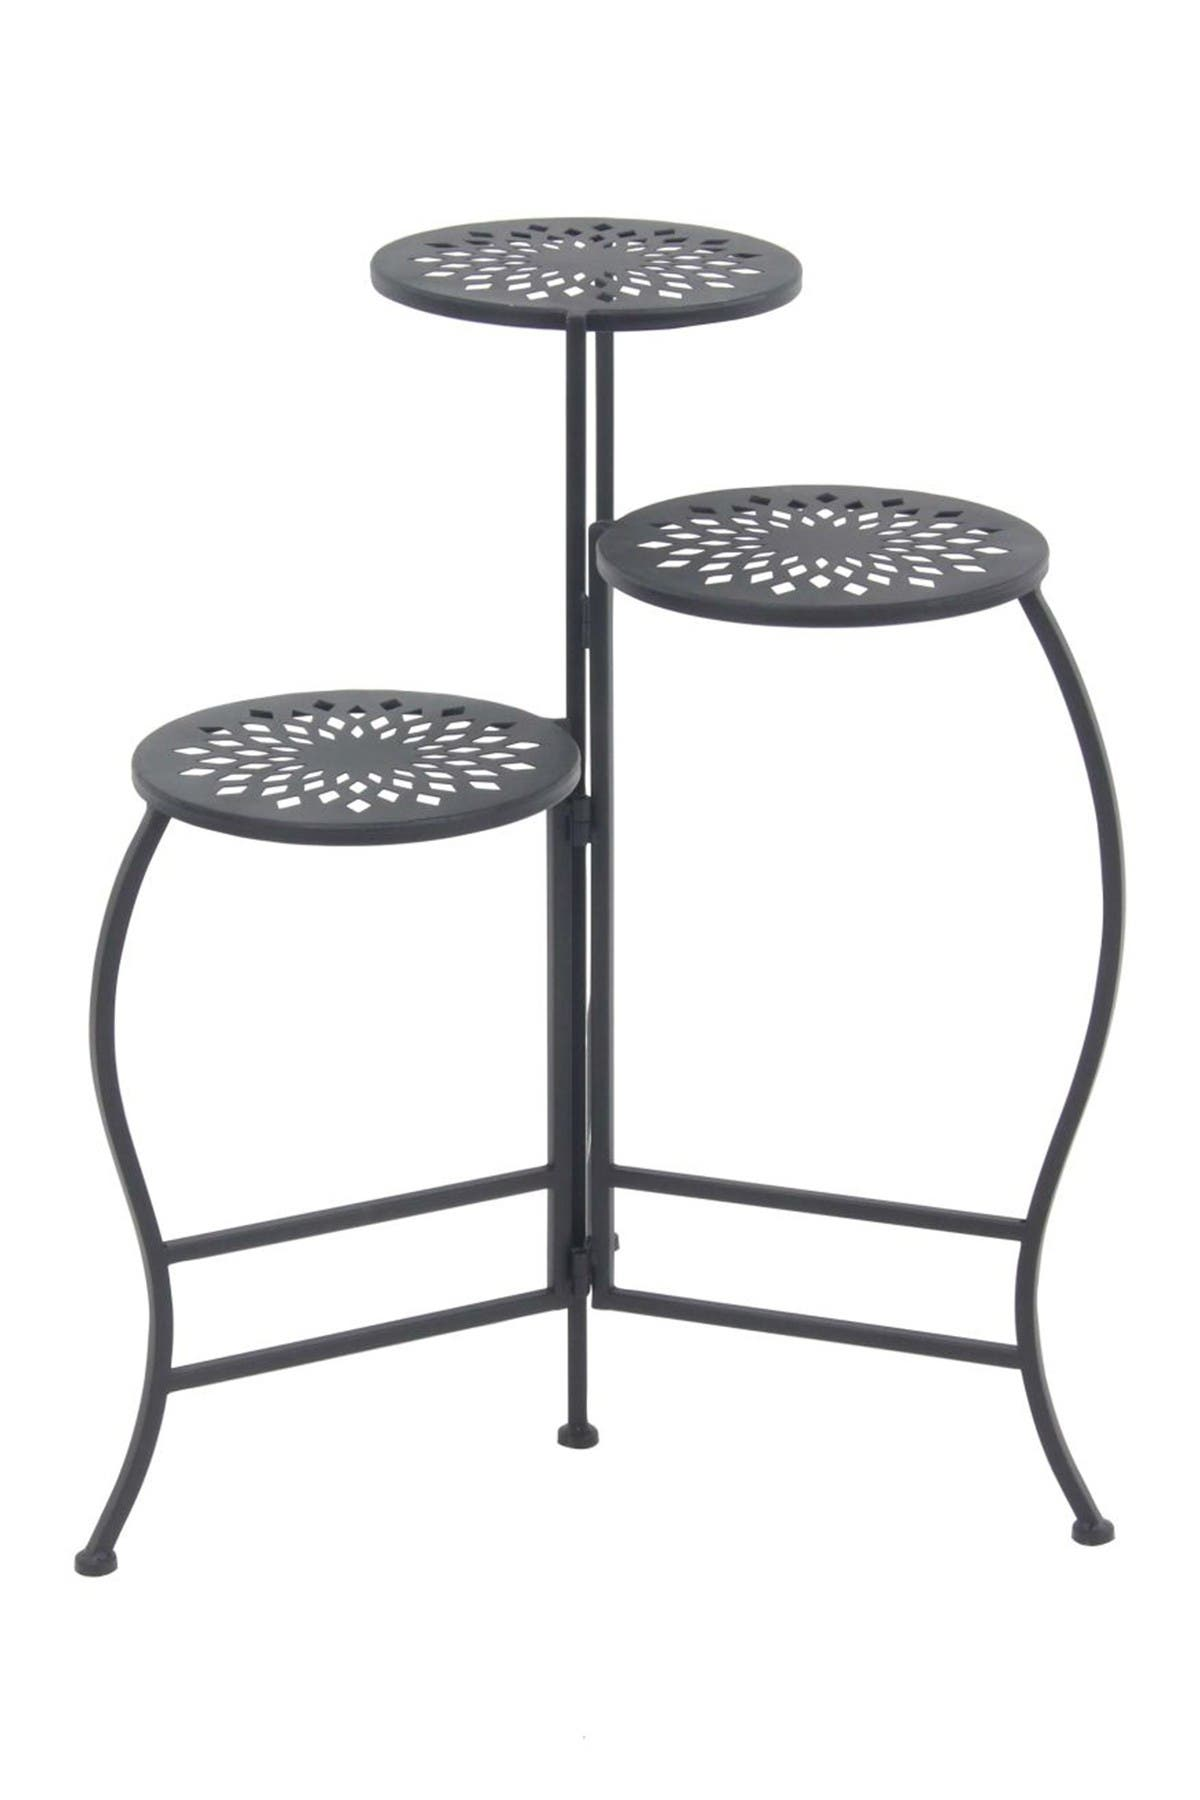 Image of Willow Row Black Folding Plant Stand